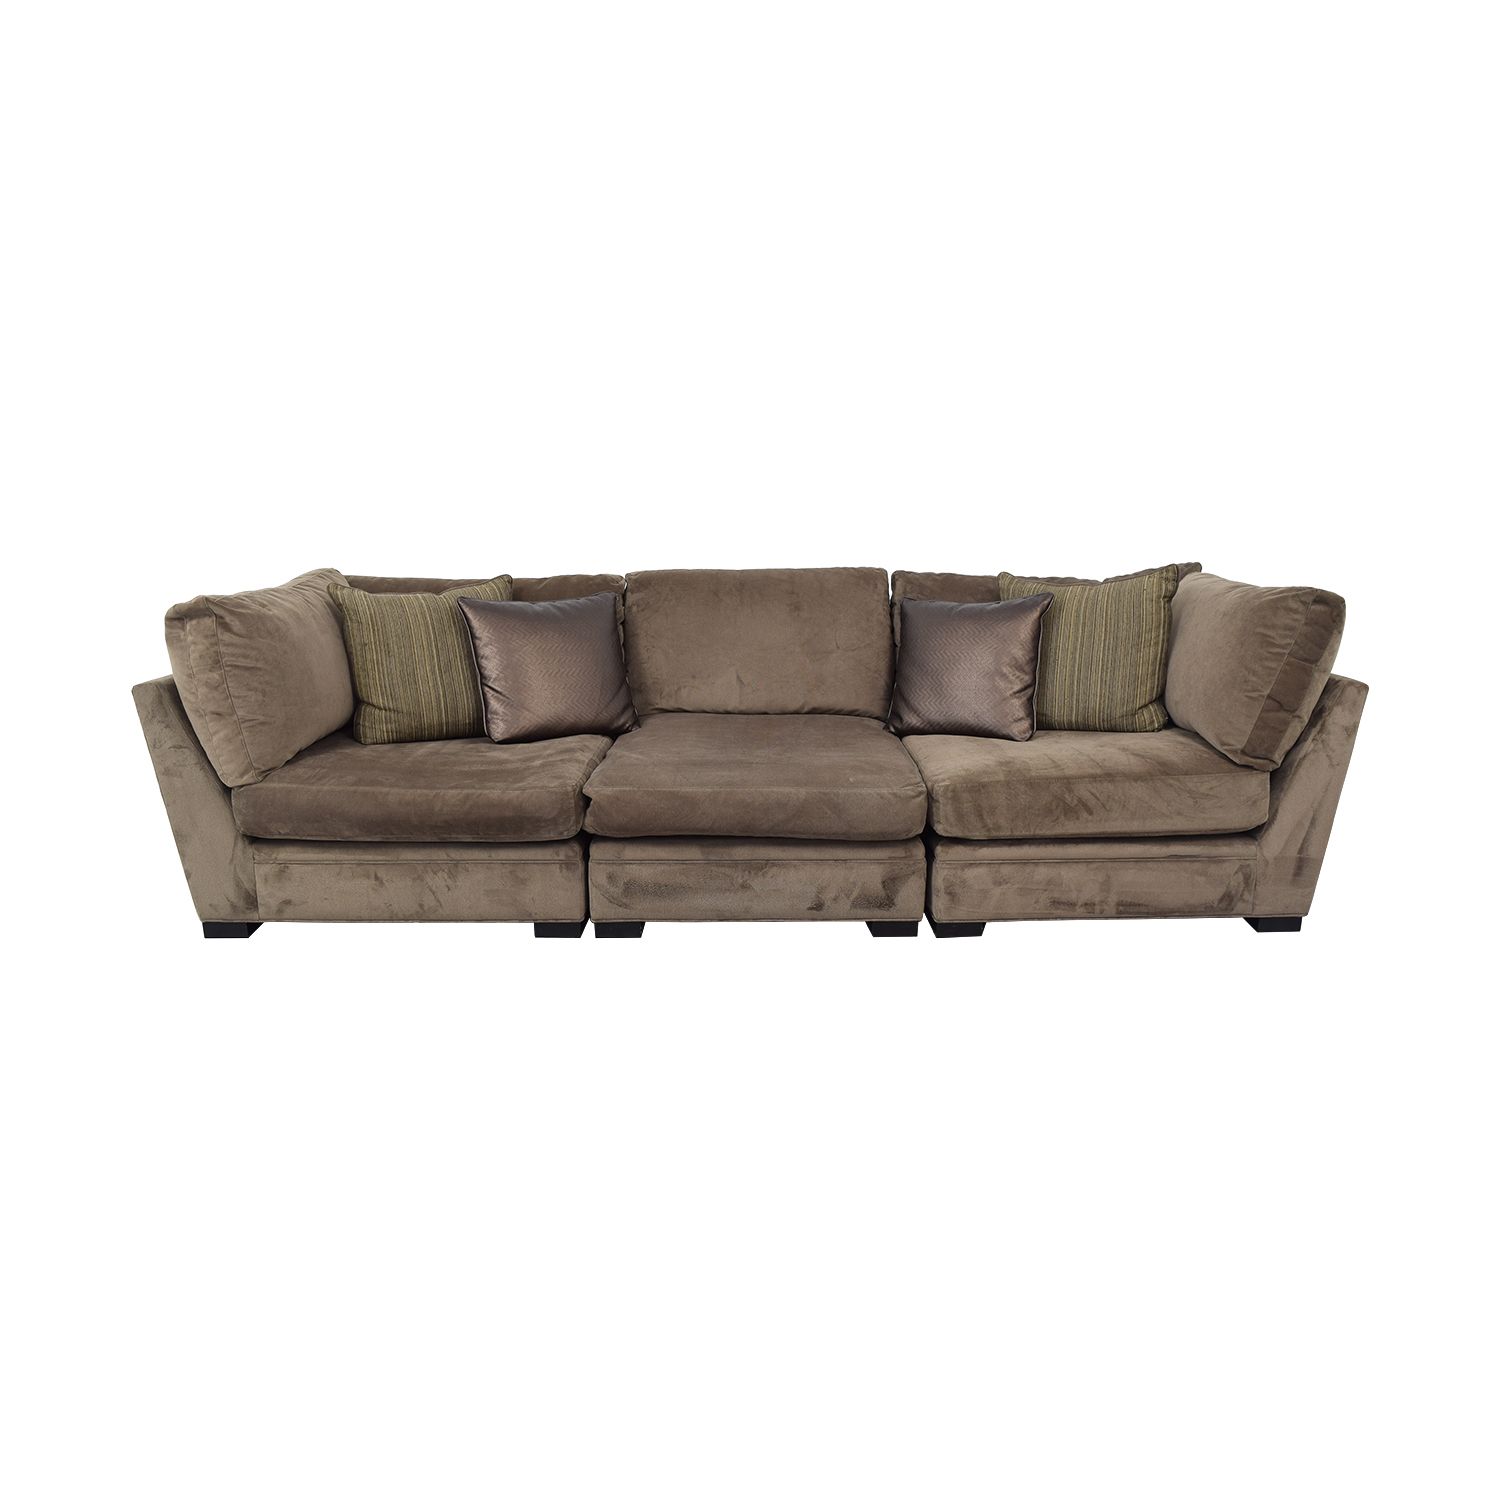 Raymour & Flanigan Raymour & Flanigan Cindy Crawford Home Microfiber Sofa ma